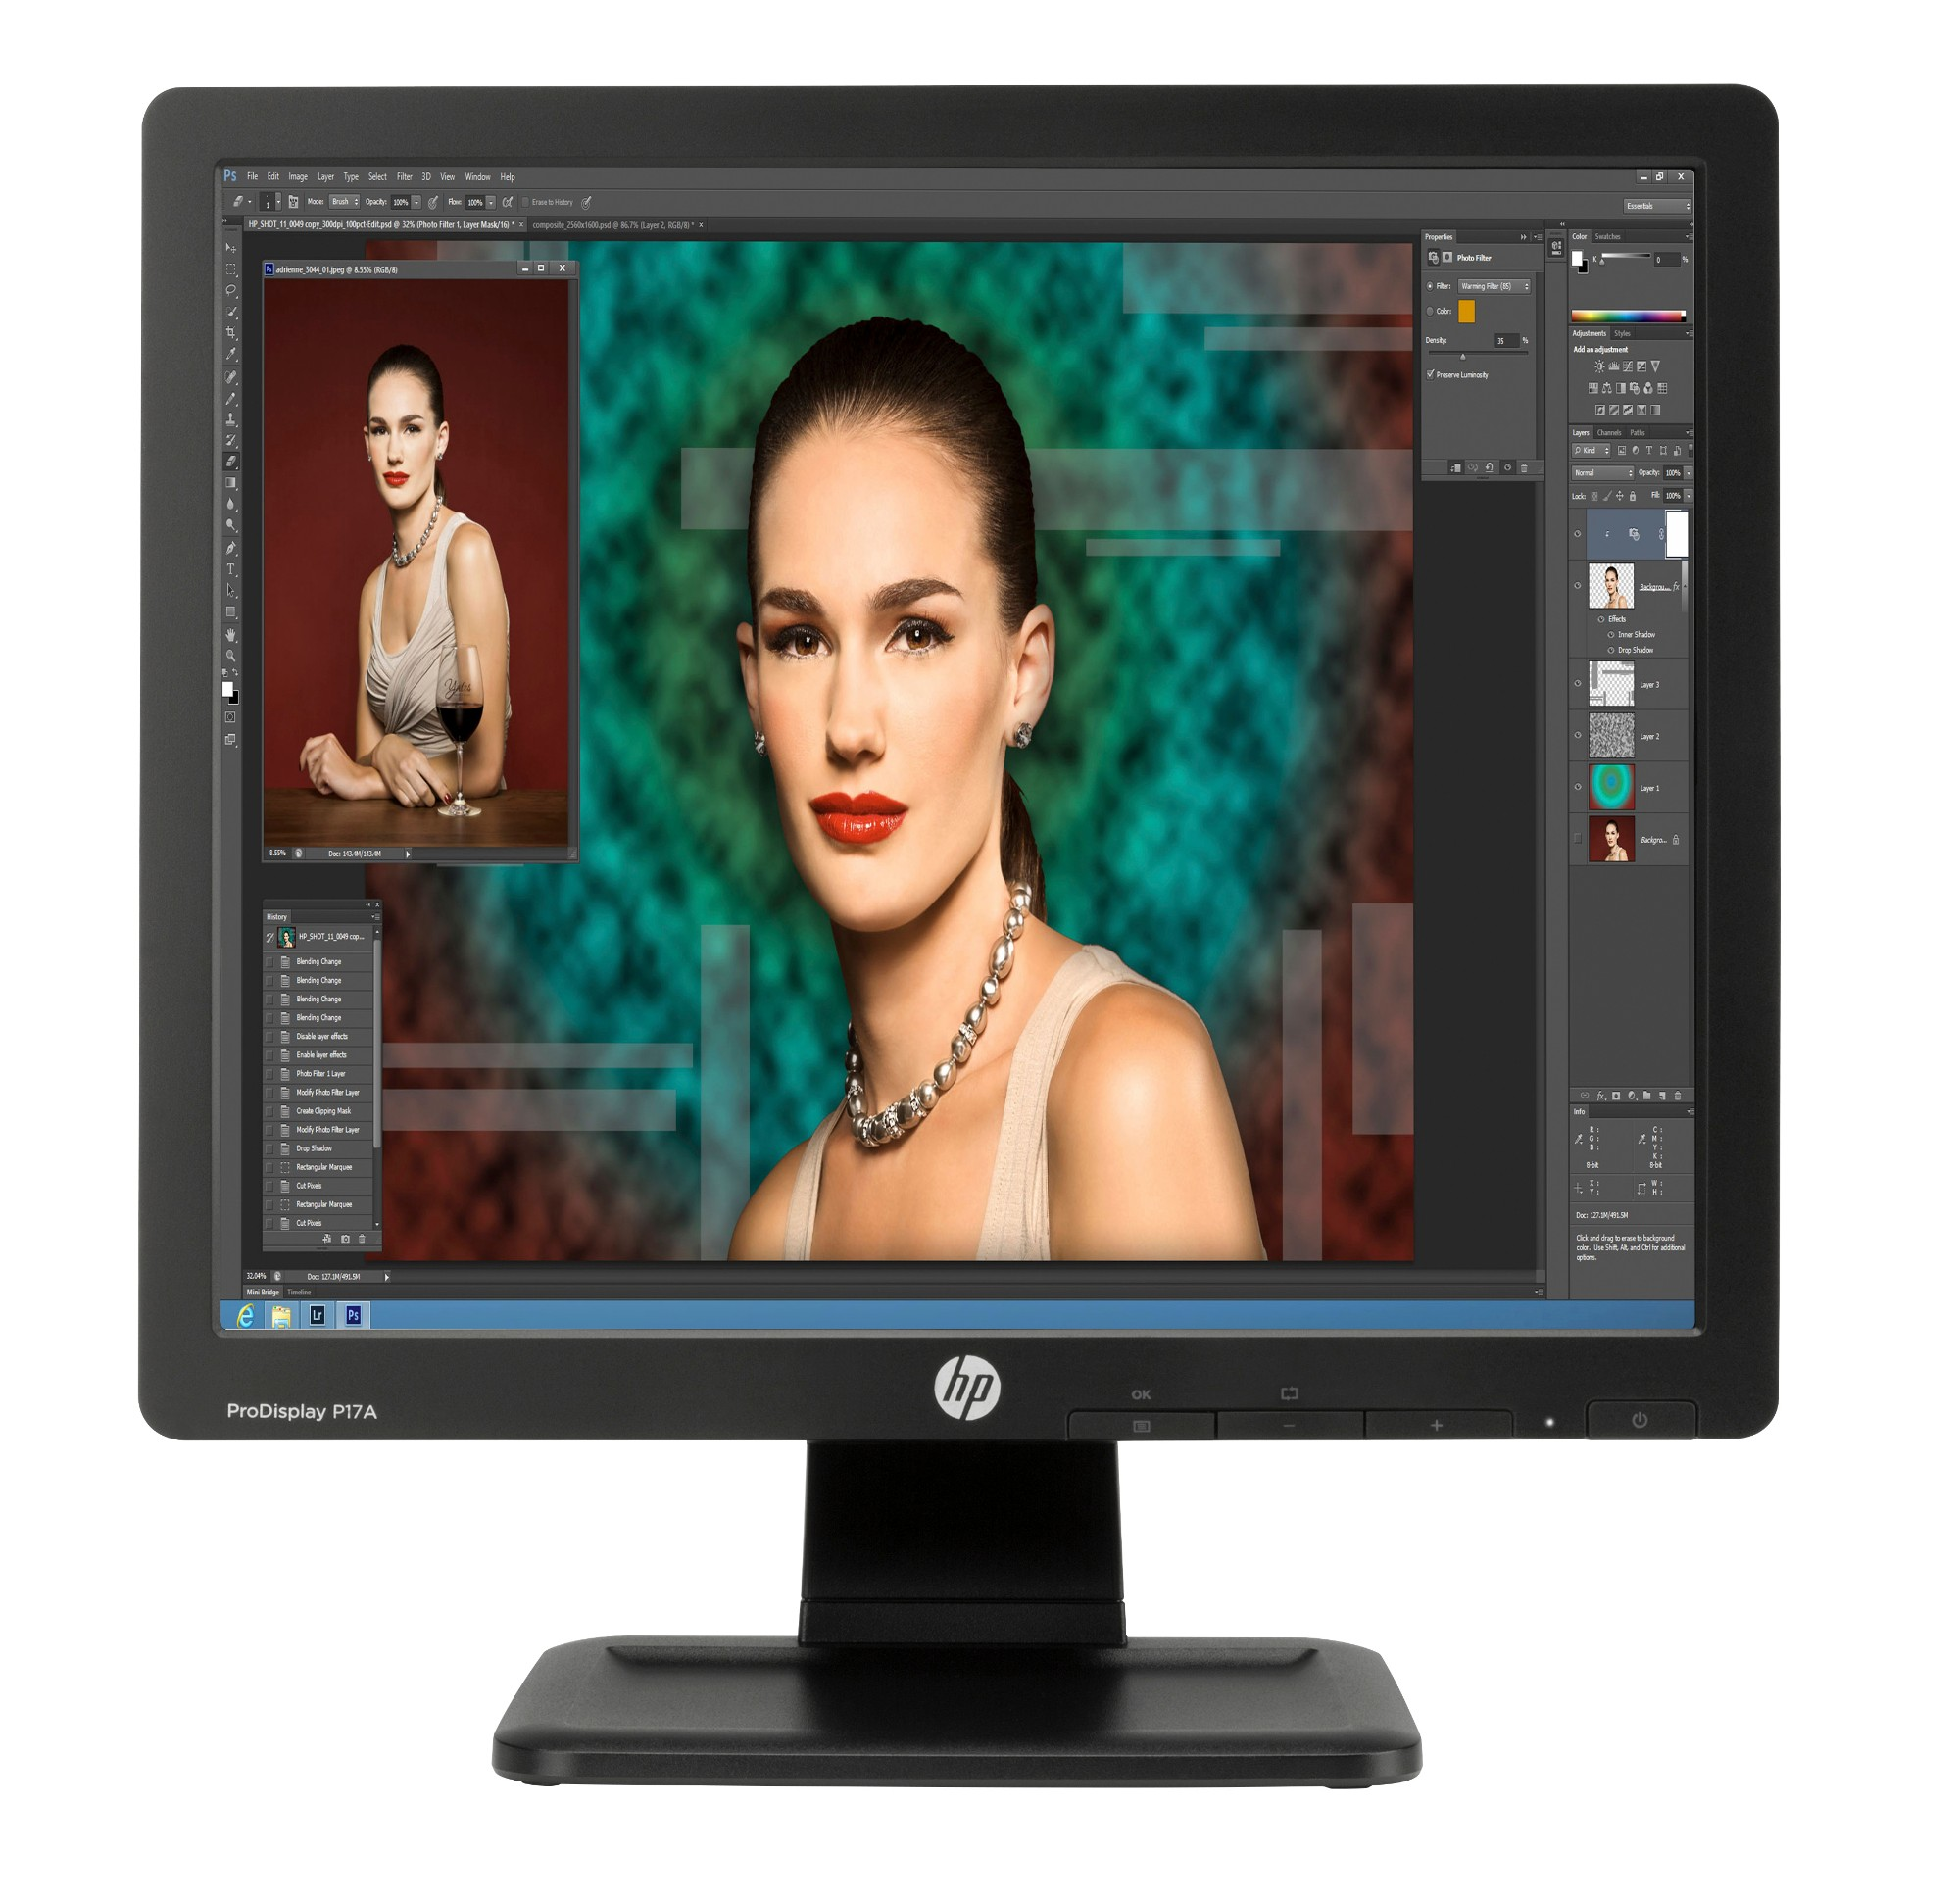 Desktop Monitor - ProDisplay P17A - 17in - 1280x1024 (SXGA)